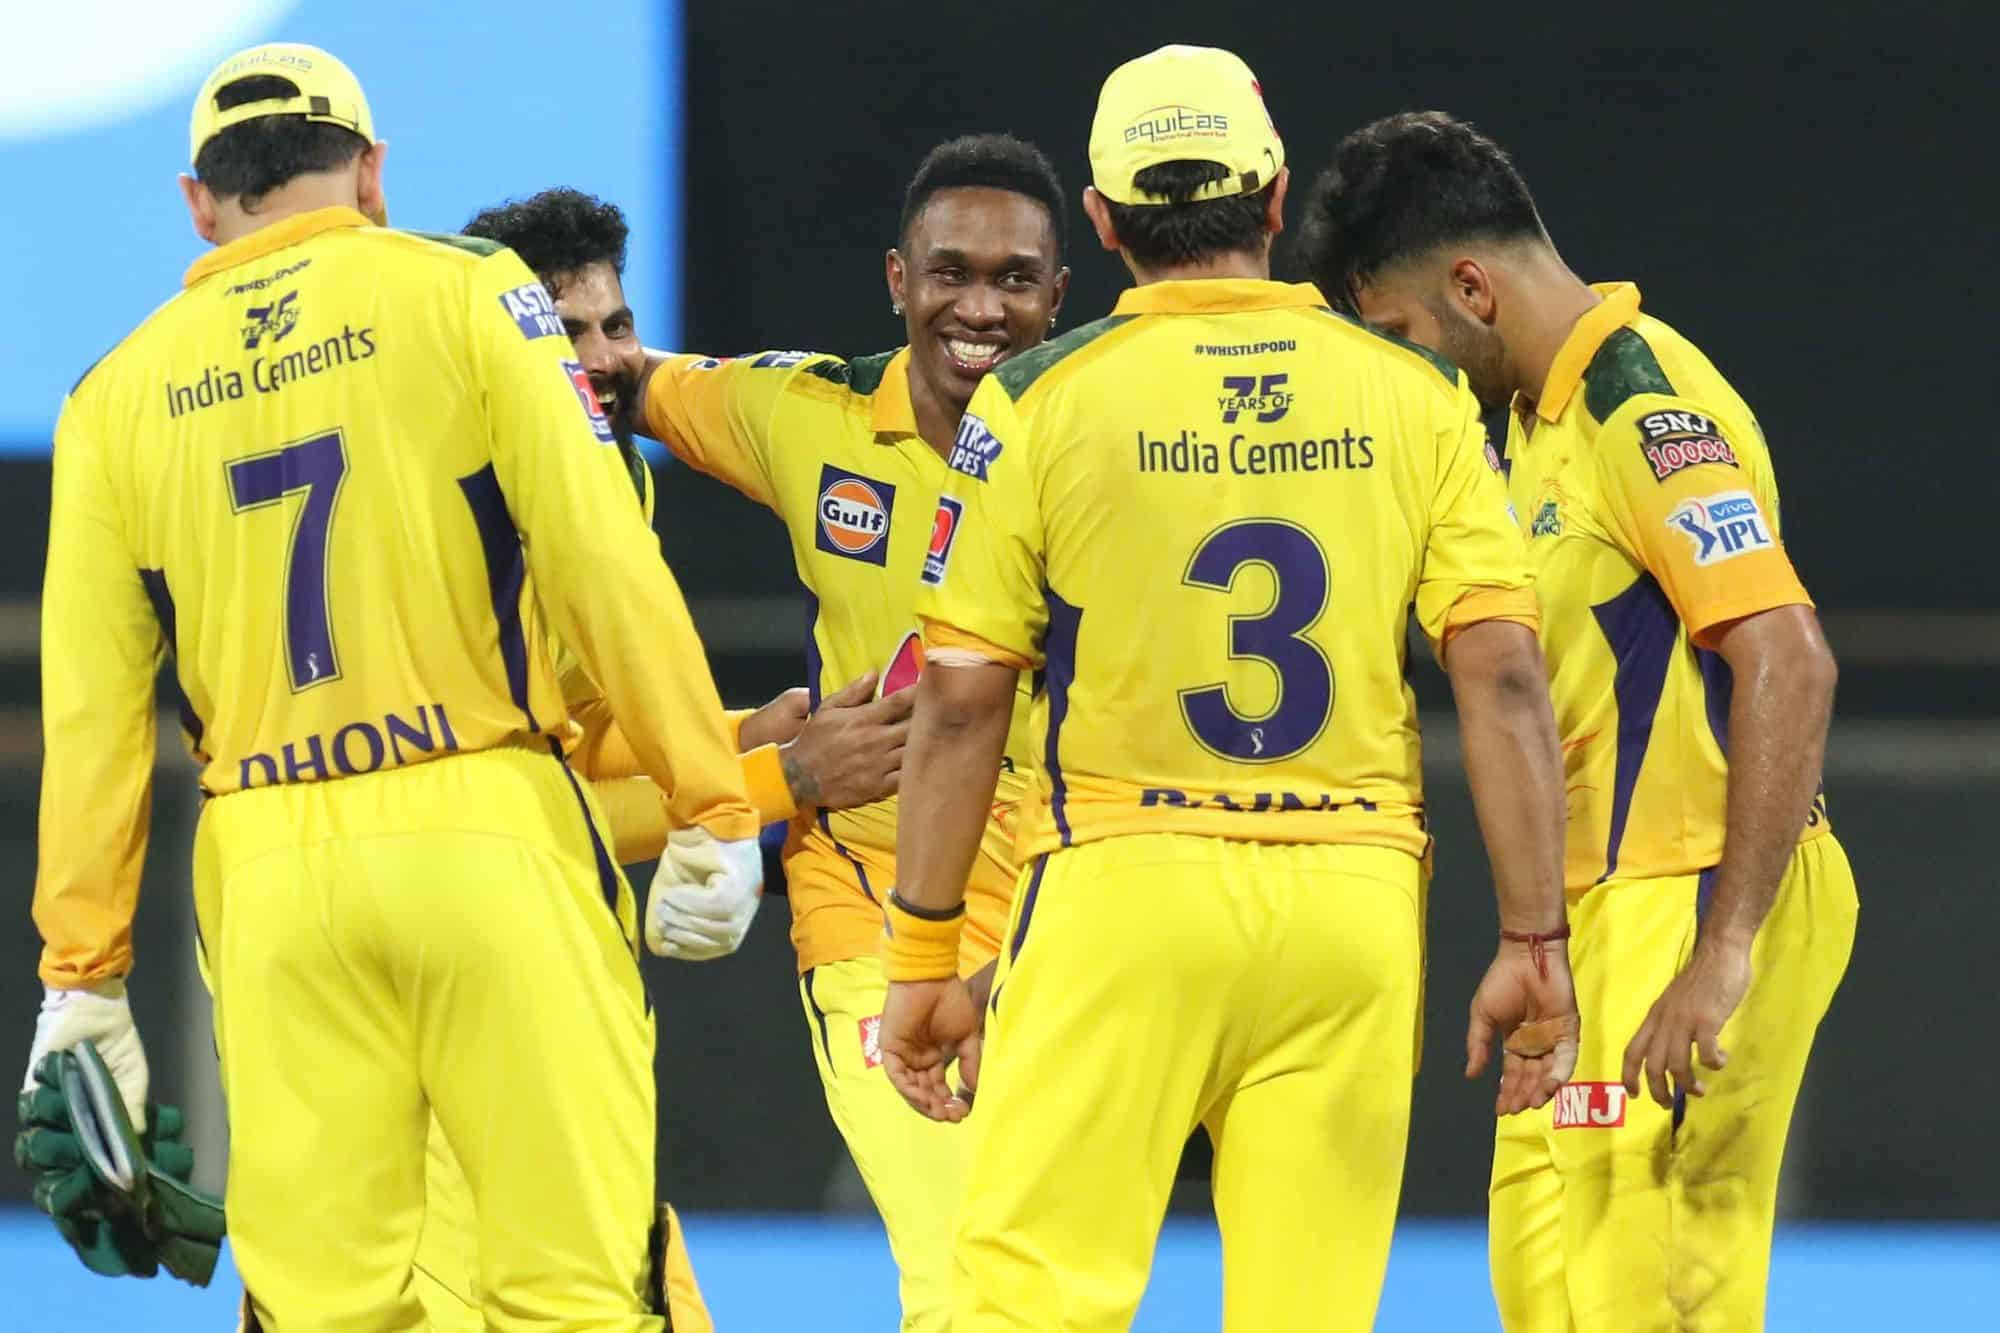 CSK vs RR: Moeen Ali, Ravindra Jadeja Shine As Chennai Super Kings Choke Rajasthan Royals With Spin - Match 12, IPL 2021